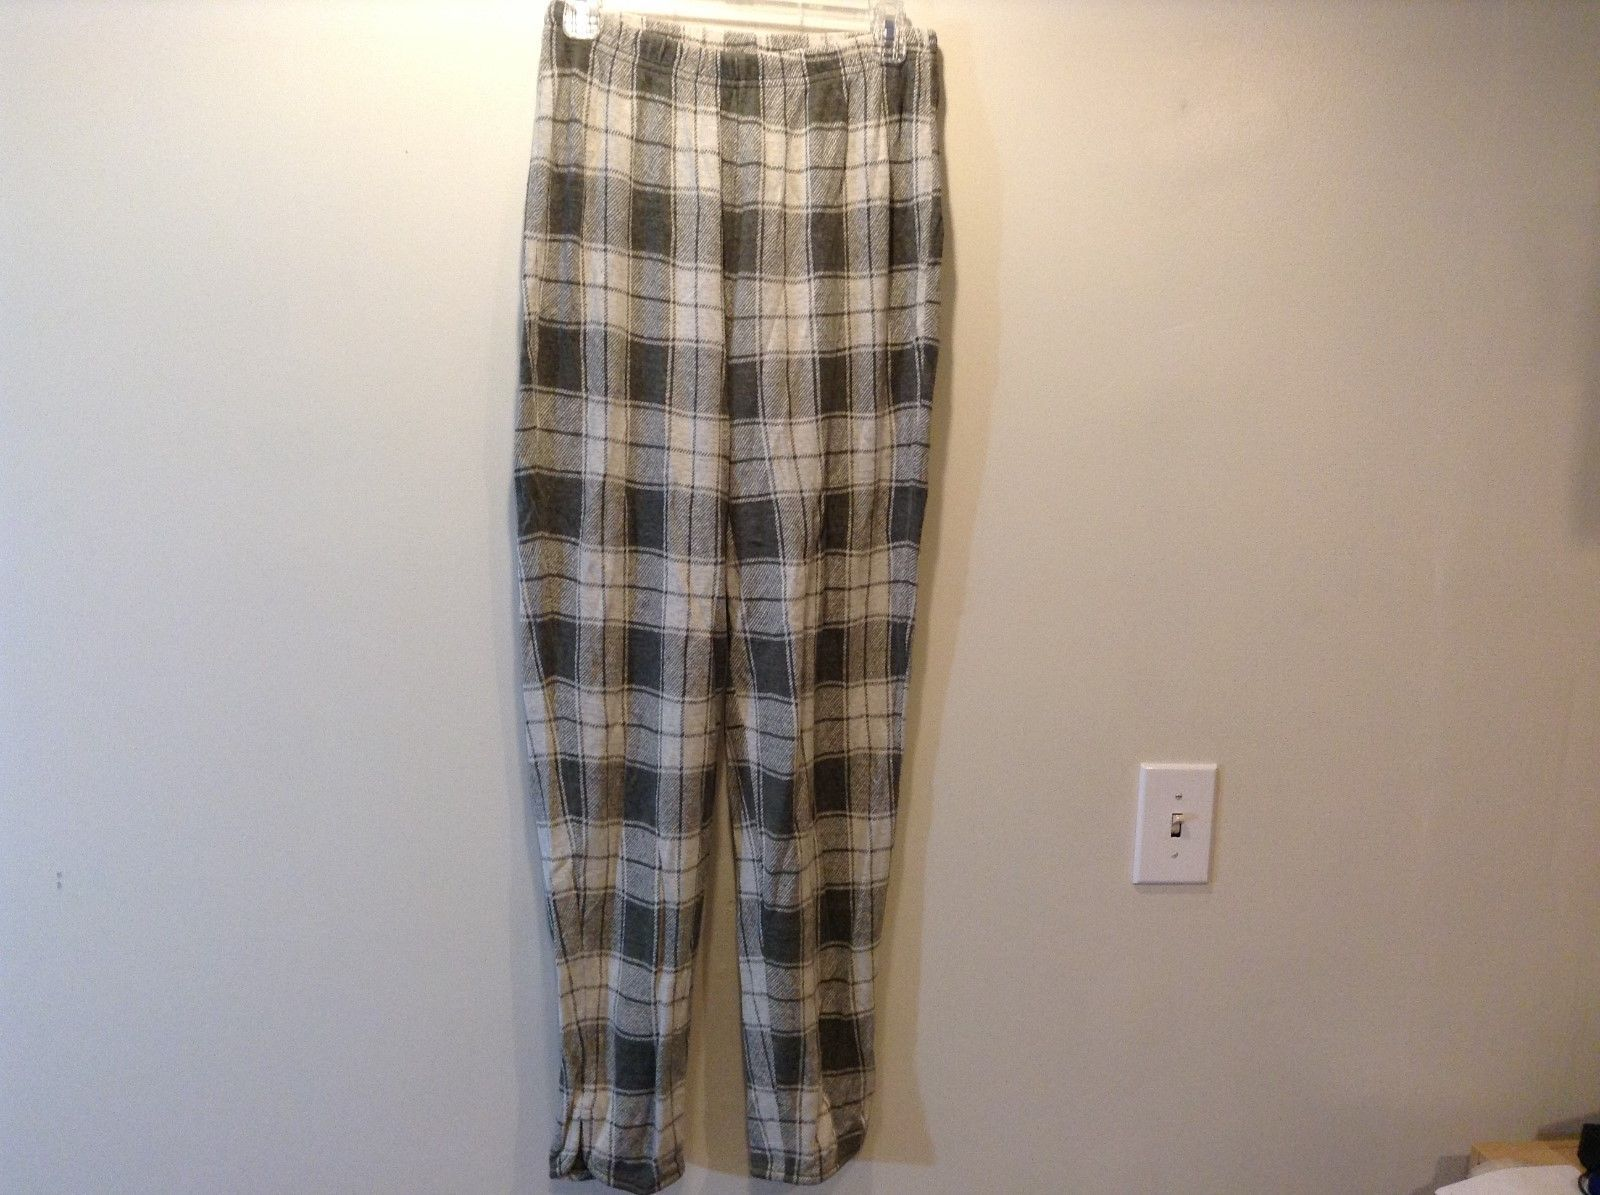 ECO-Sport Green Tan Geometric/Plaid Design Lounge Pants Sz M